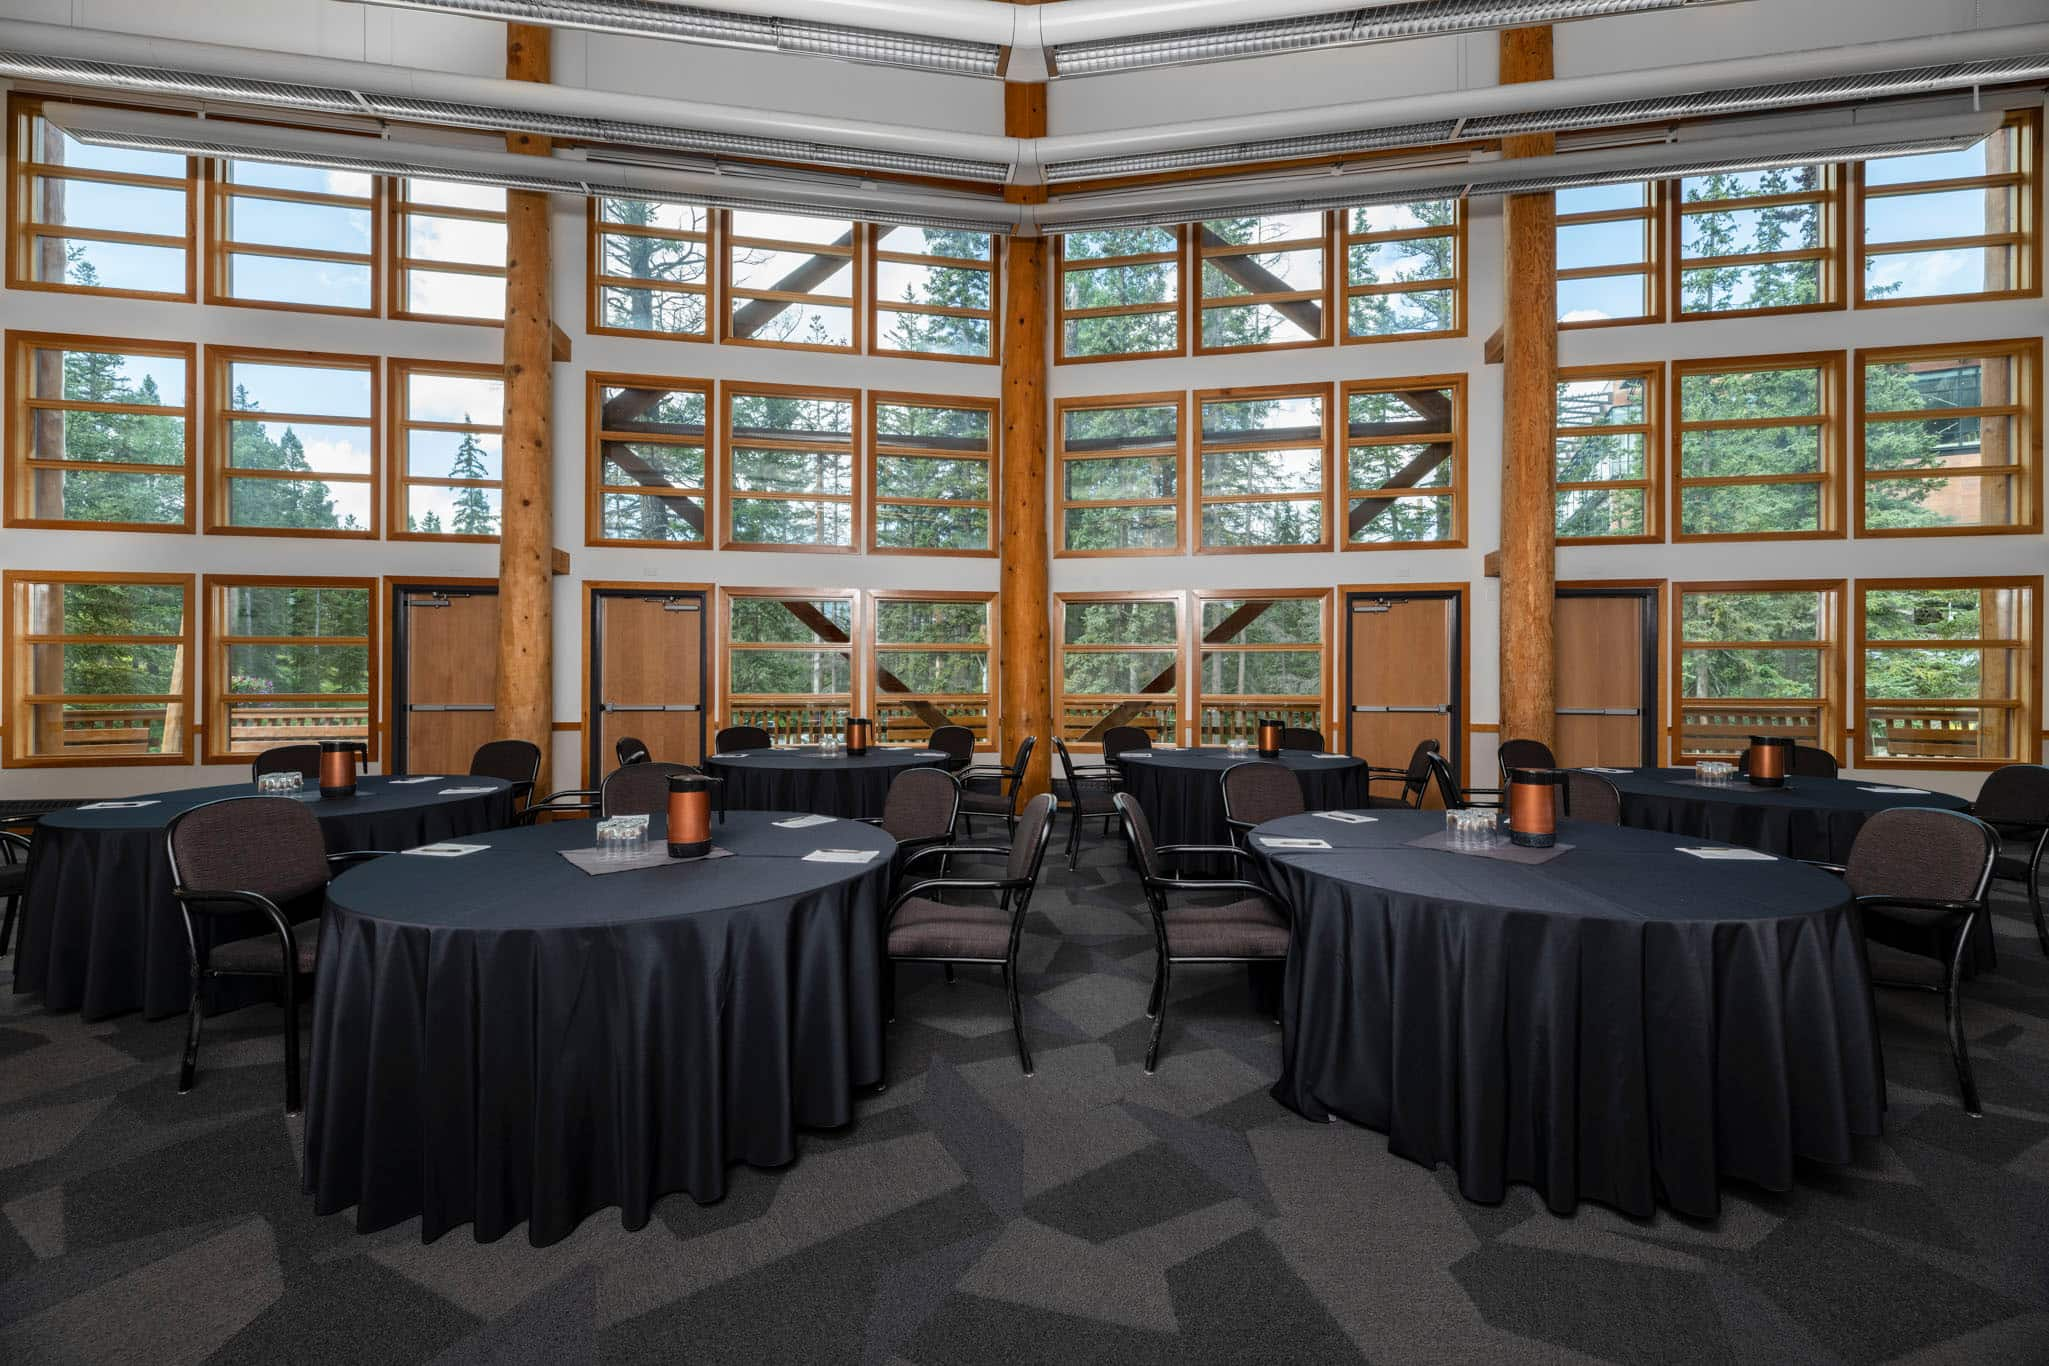 Banquet room with tables in the Professional Development Centre Hotel.